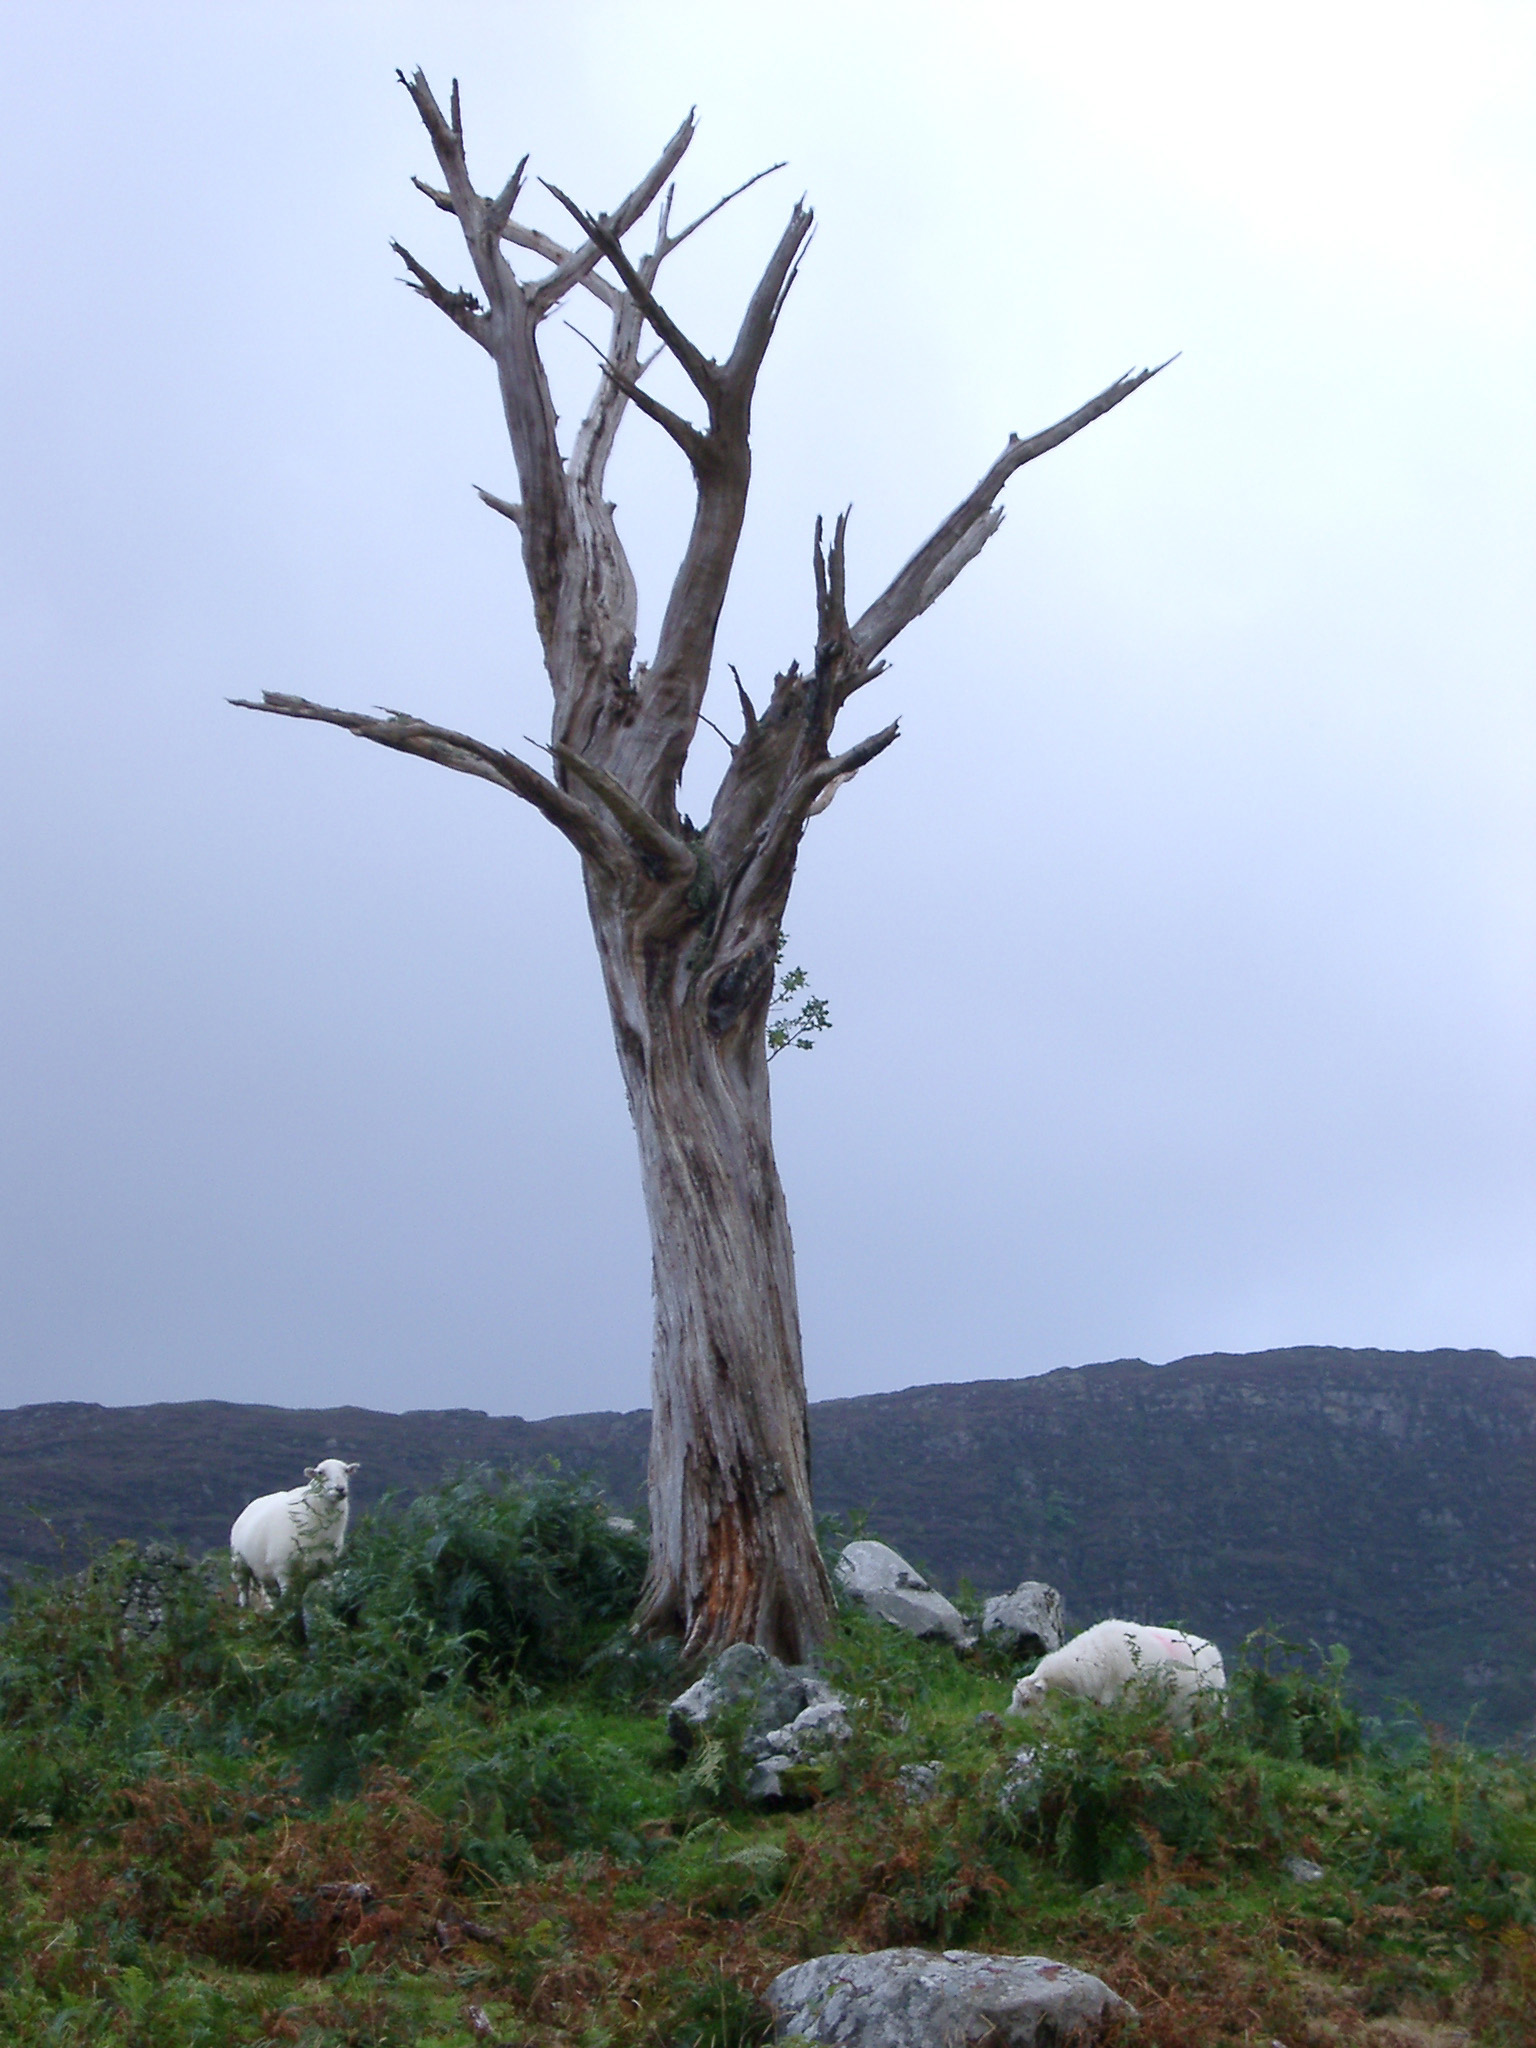 Free Dead Tree Stock Photo - FreeImages.com